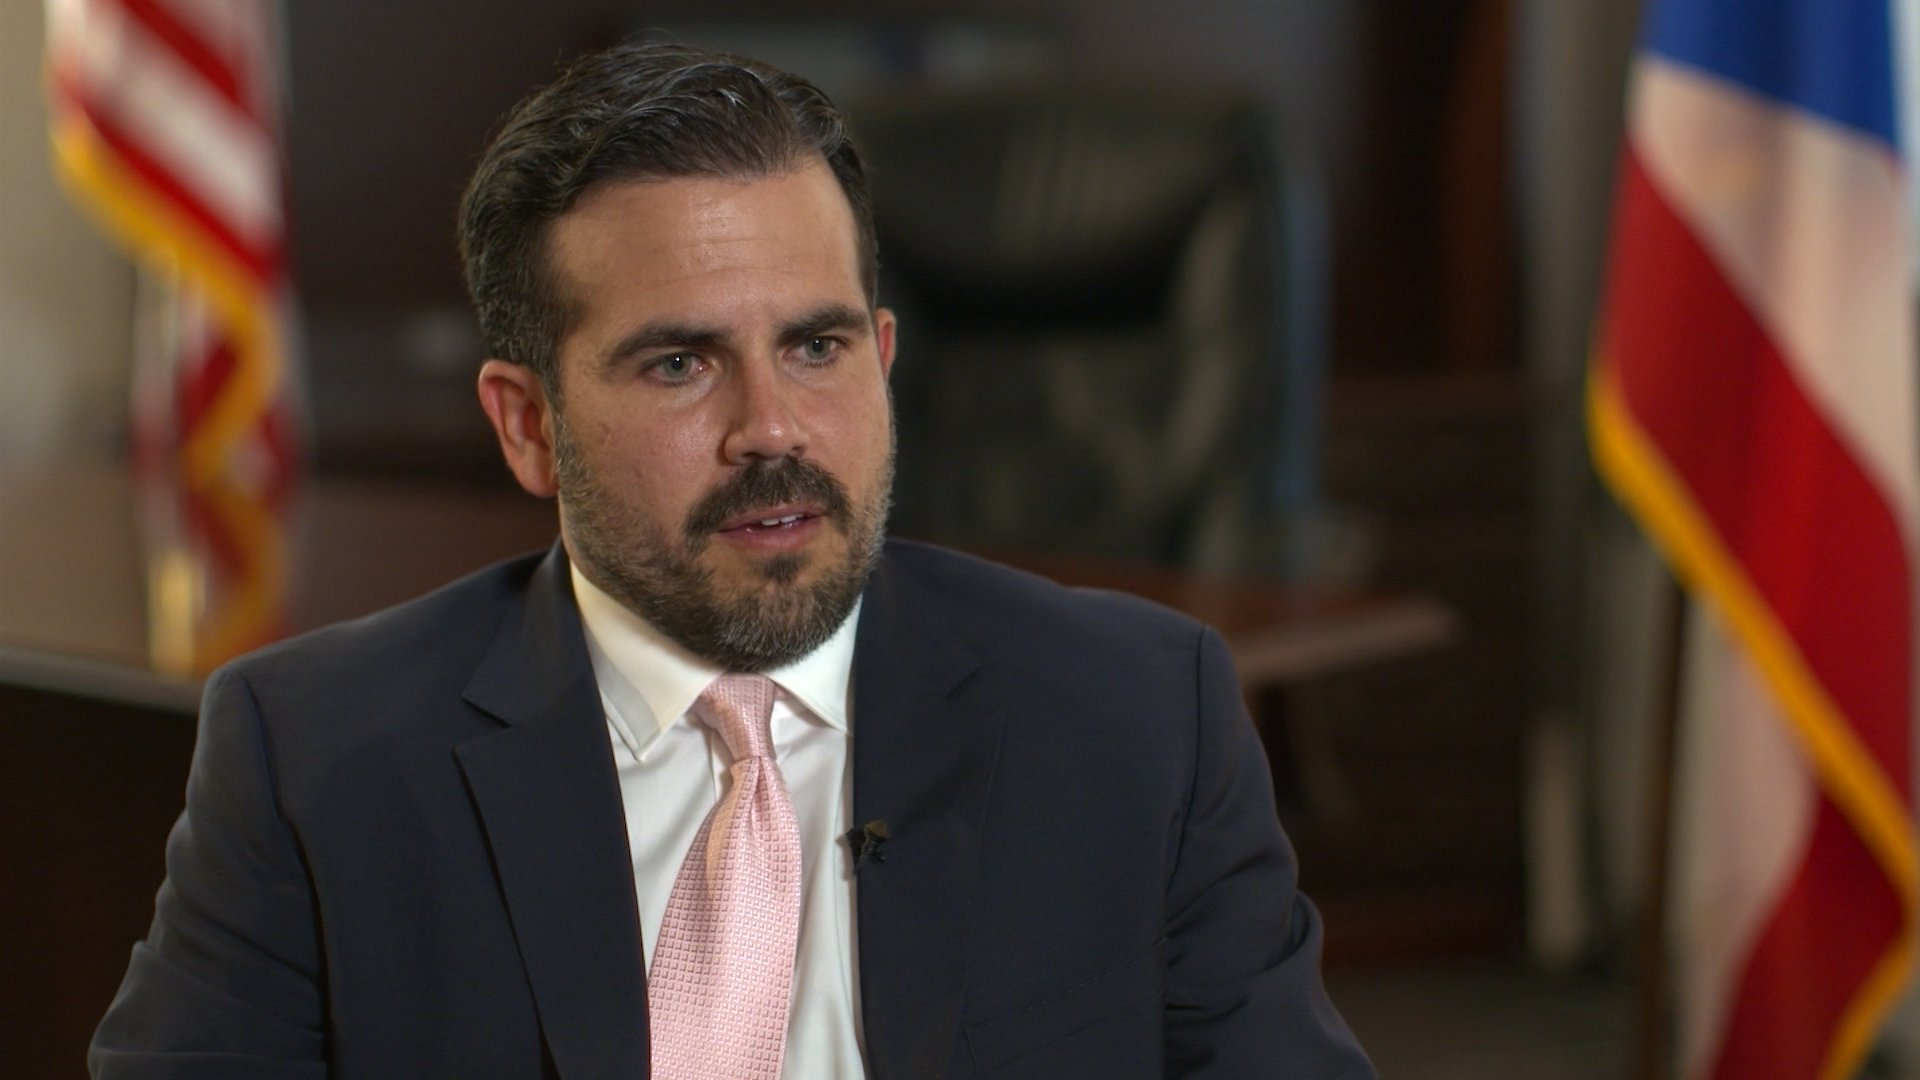 Calls intensify for Puerto Rican governor's resignation following leaked private chats